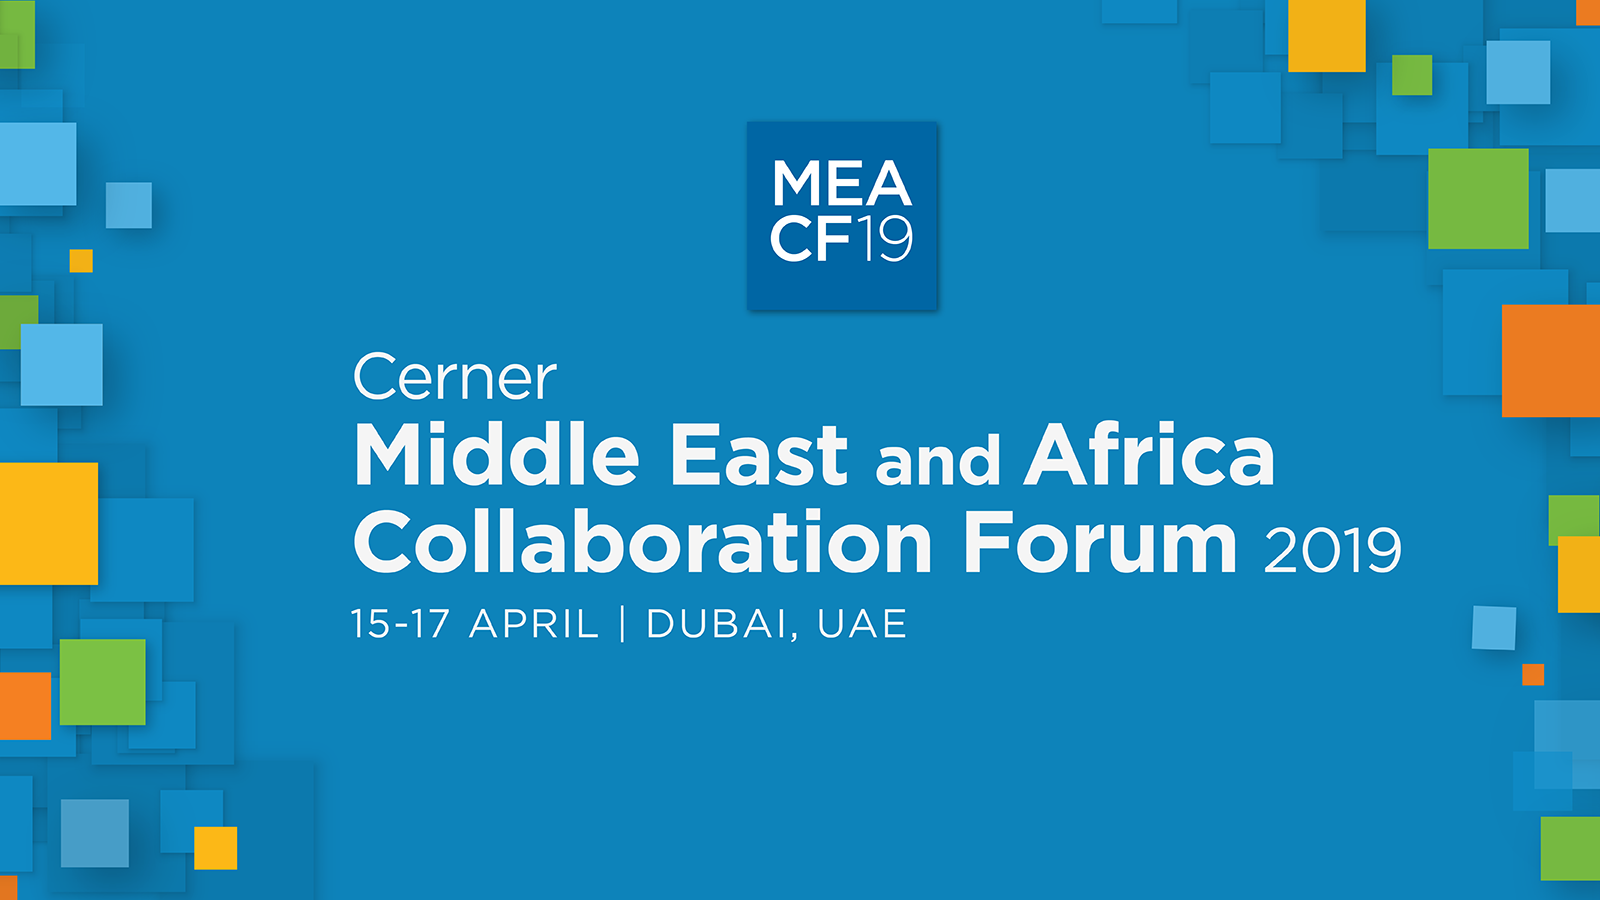 Middle East and Africa Collaboration Forum 2019